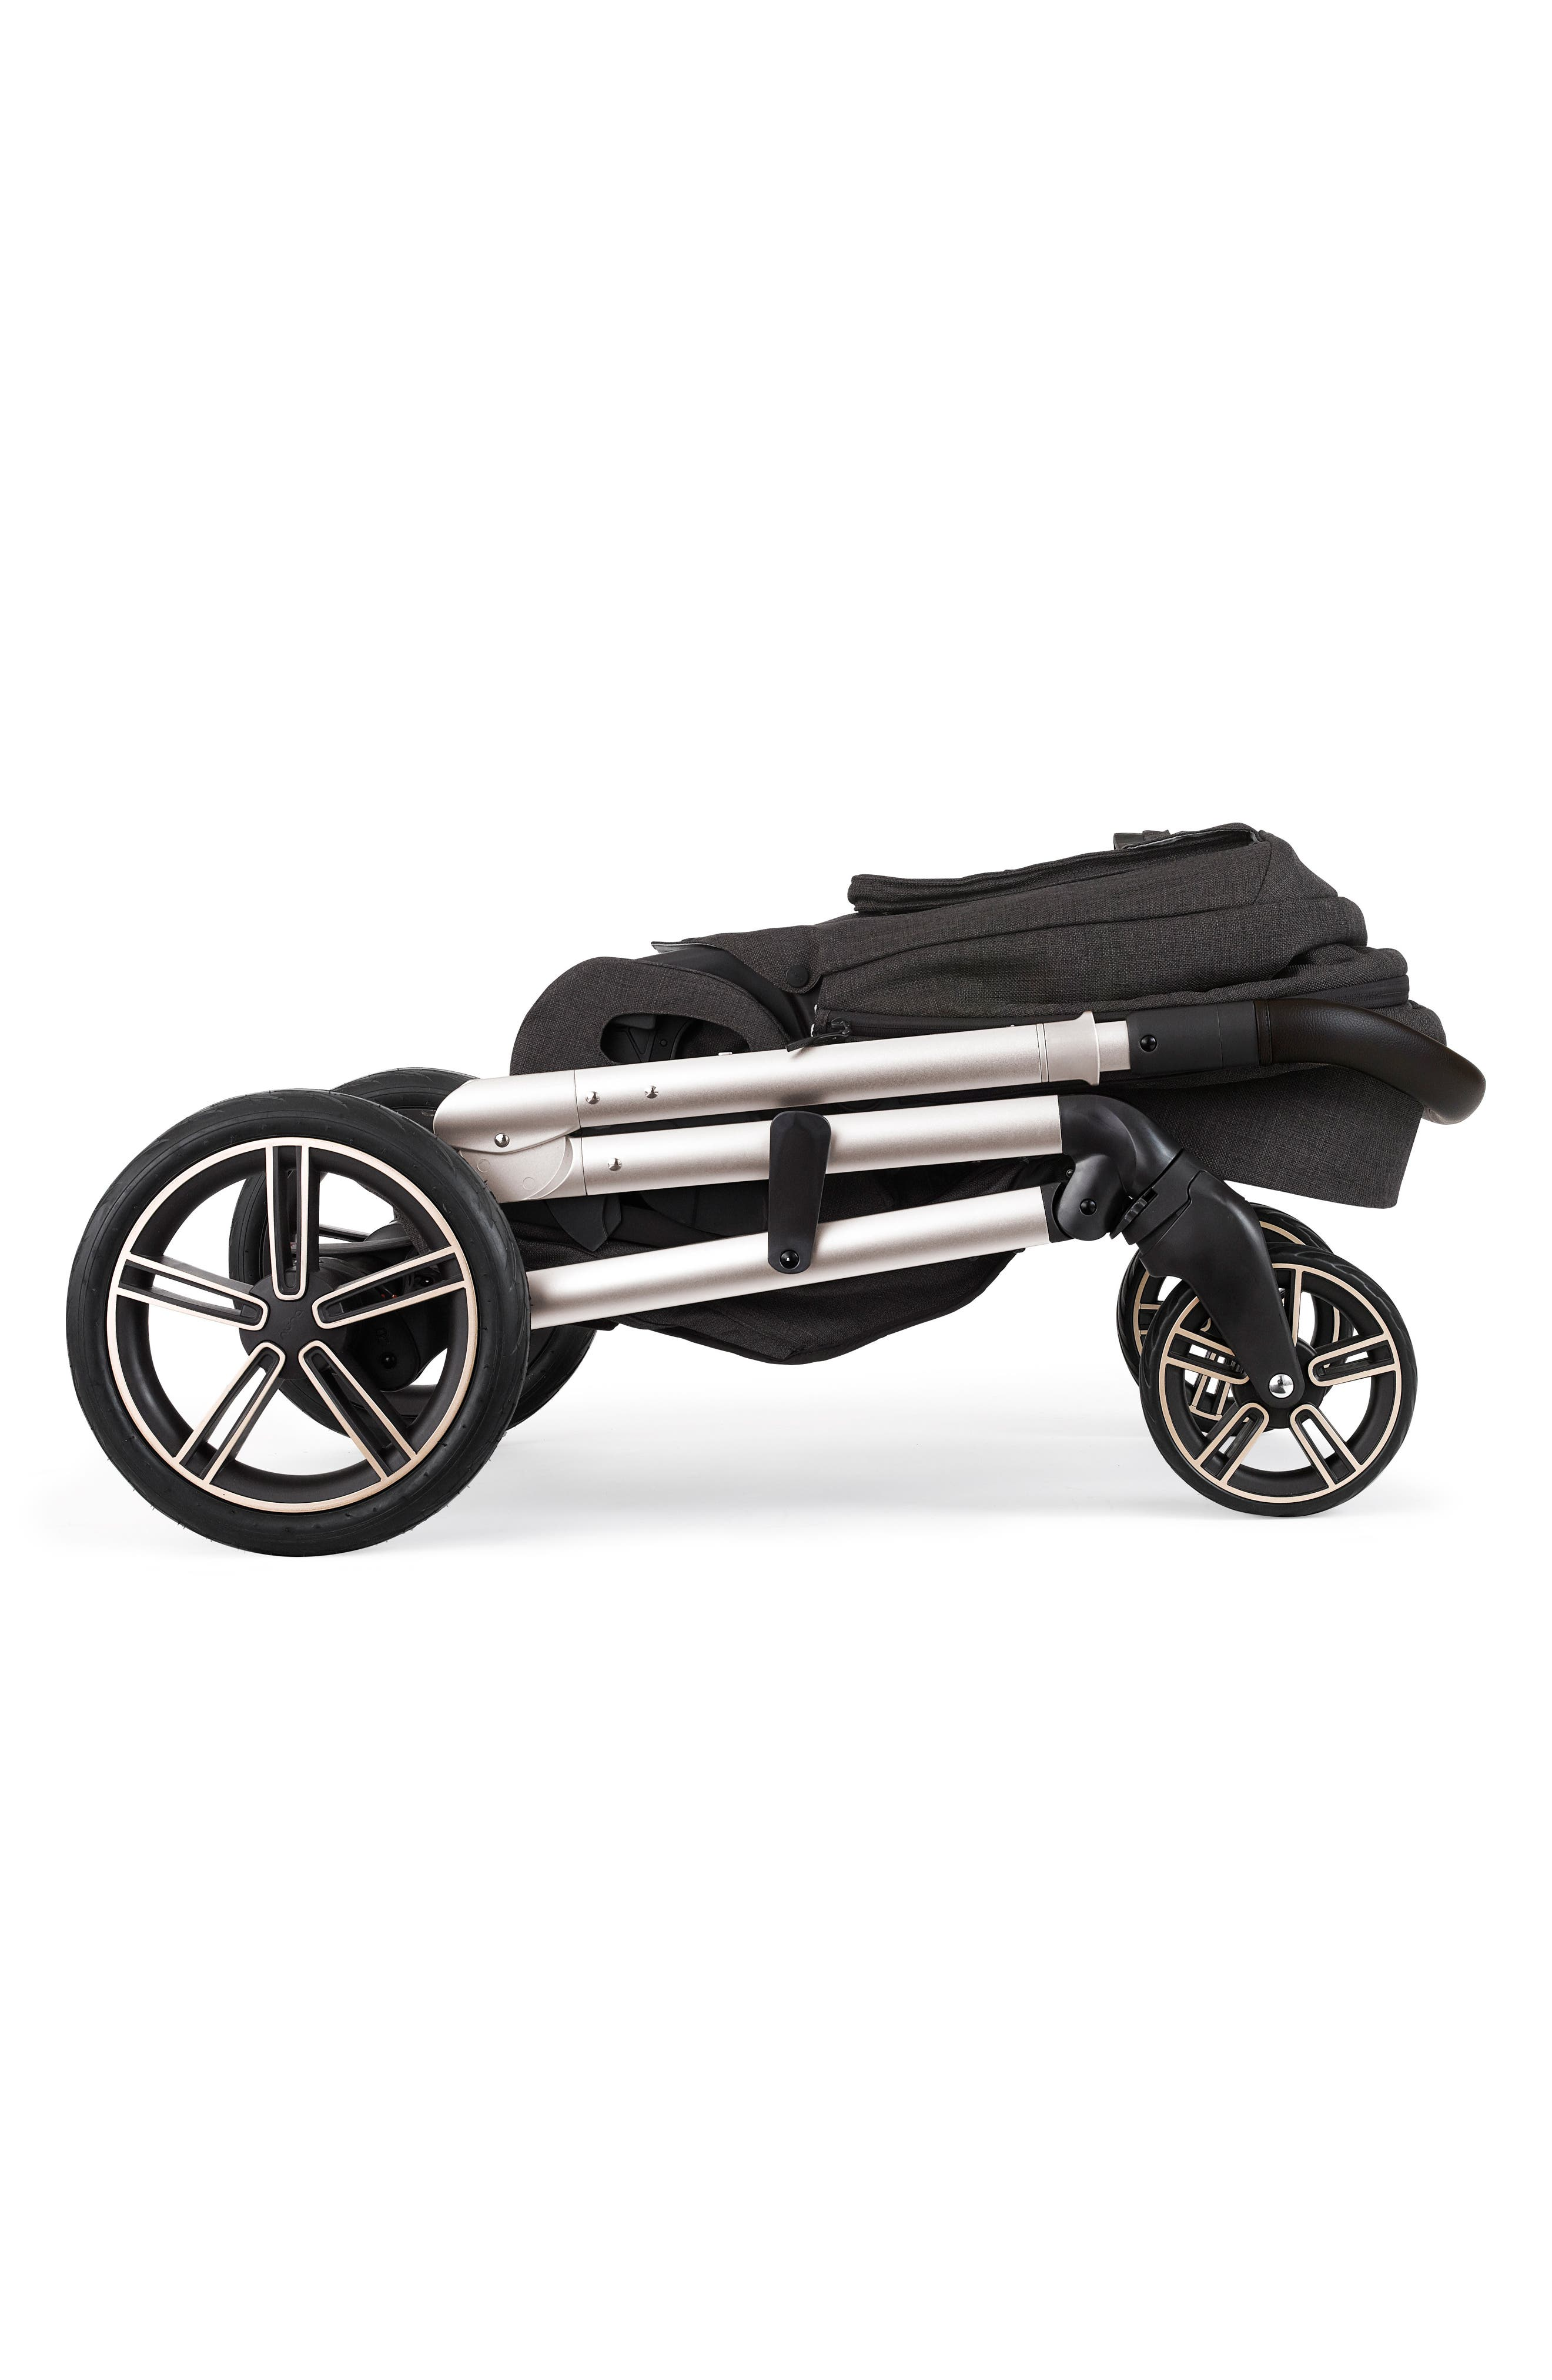 MIXX<sup>™</sup> Suited Collection Stroller & Bassinet Set,                             Alternate thumbnail 10, color,                             001